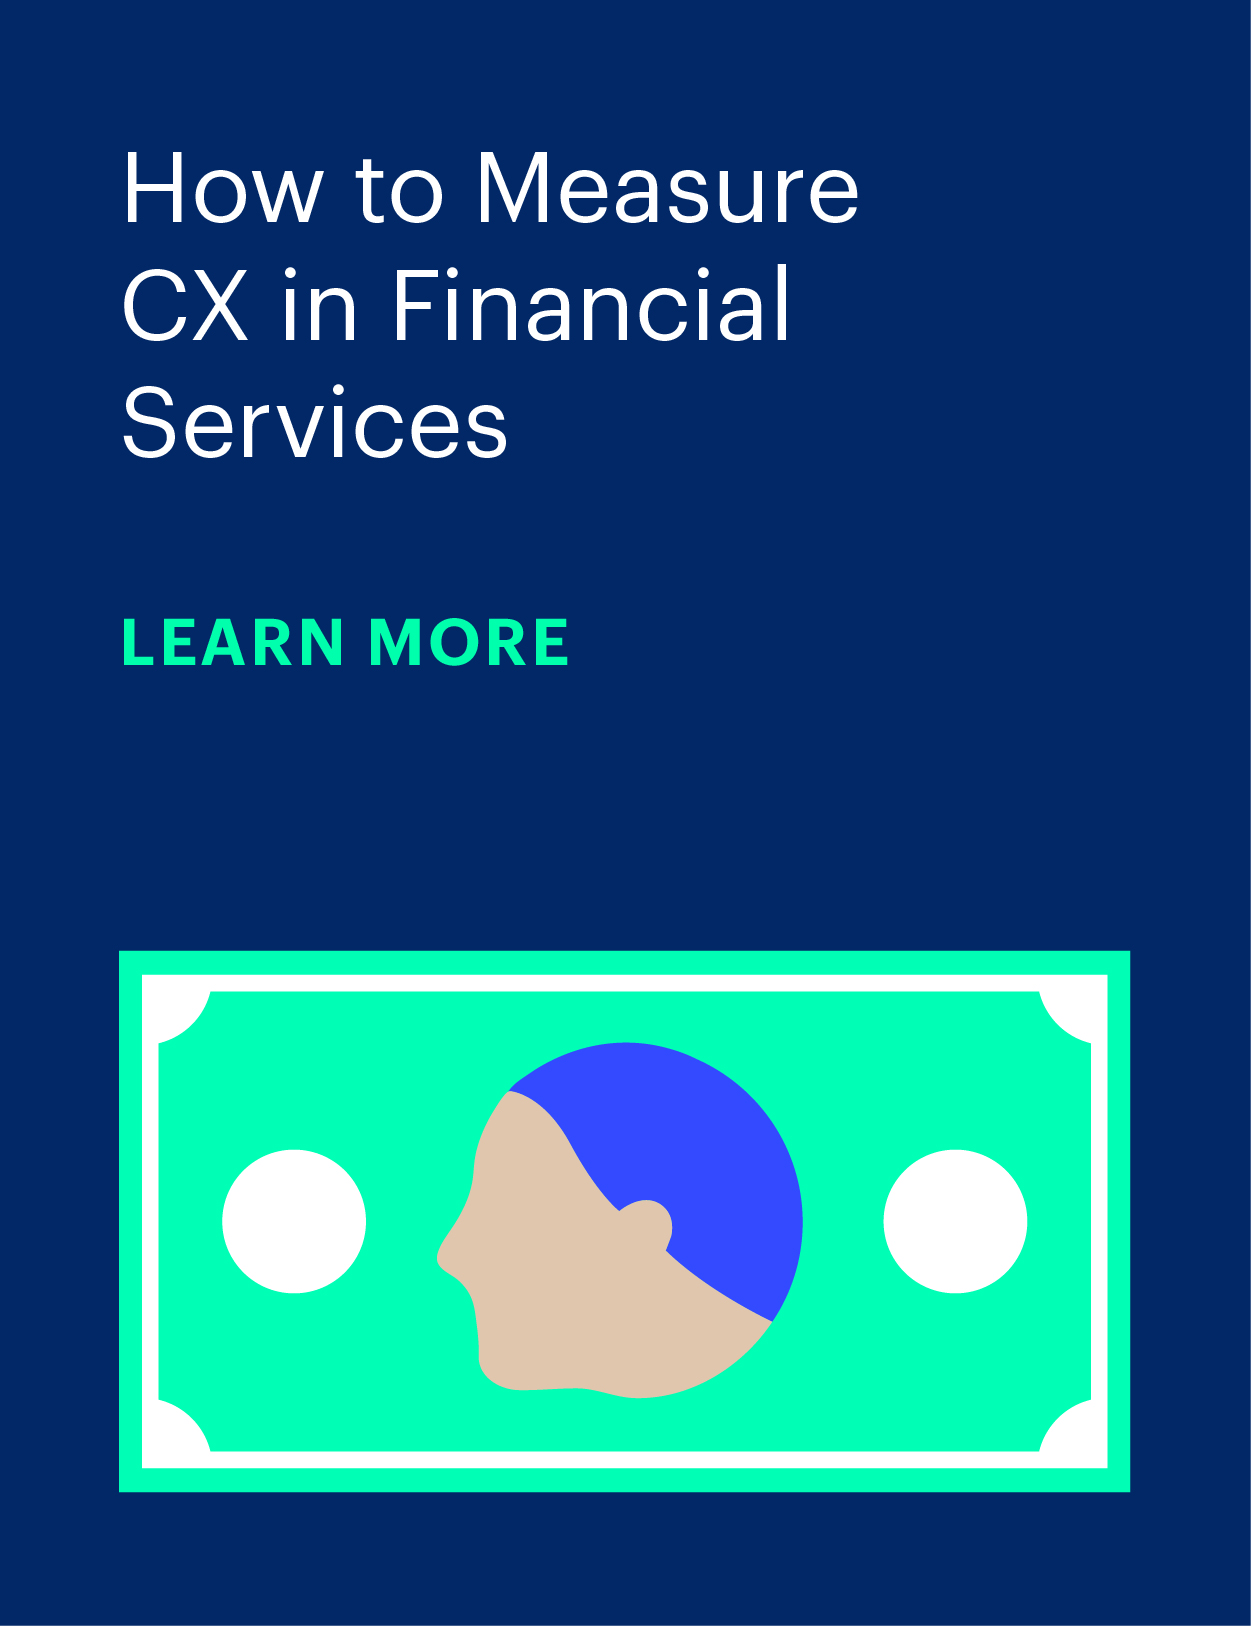 How to measure CX in financial services